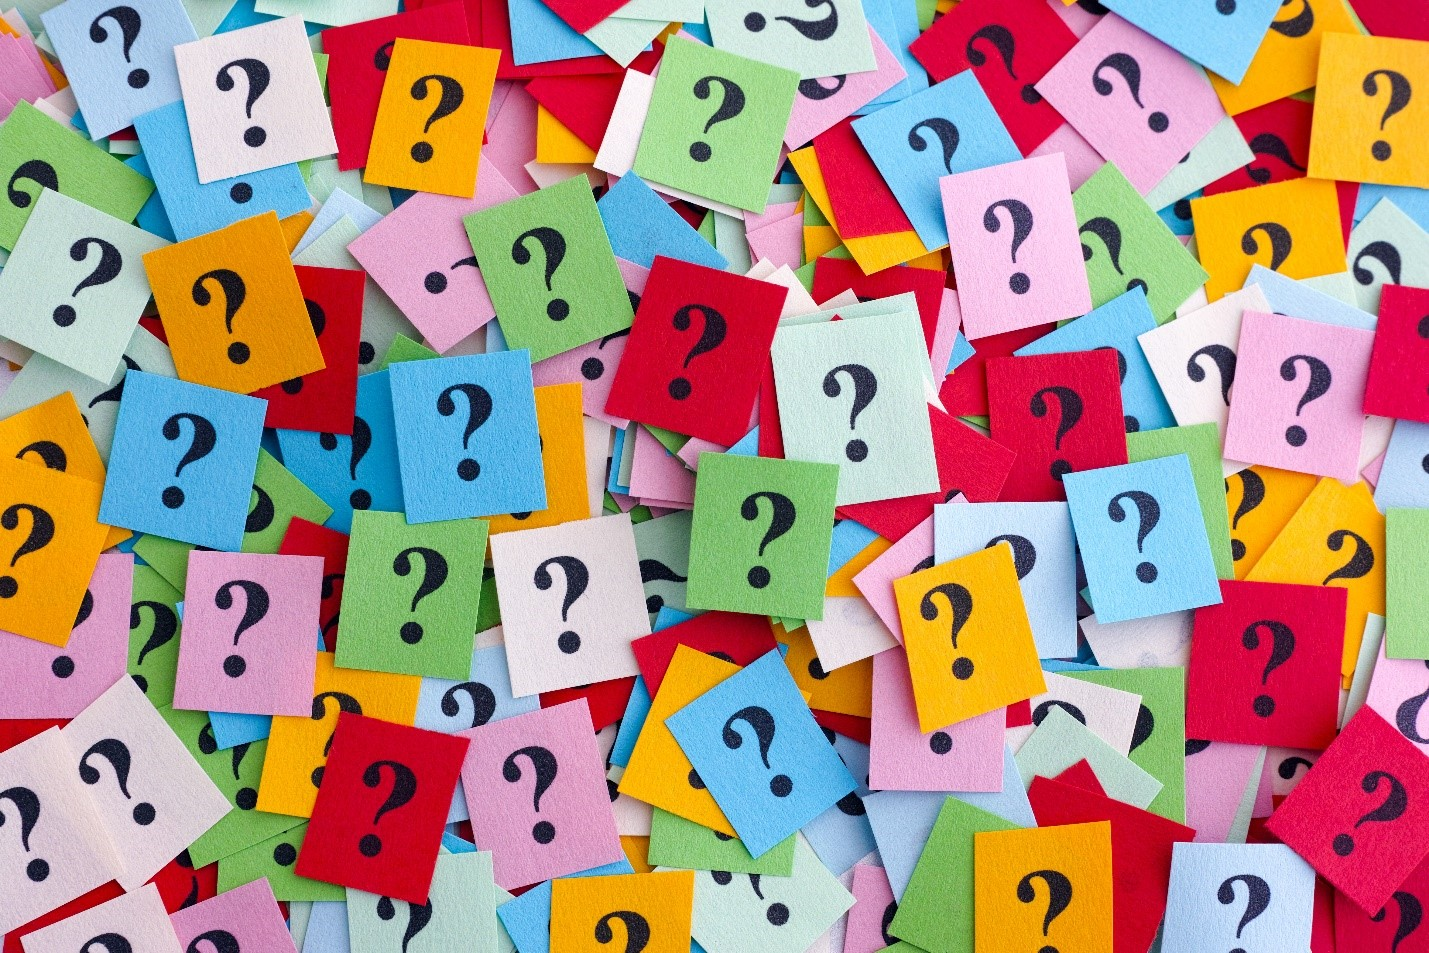 A board of colorful sticky notes with question marks